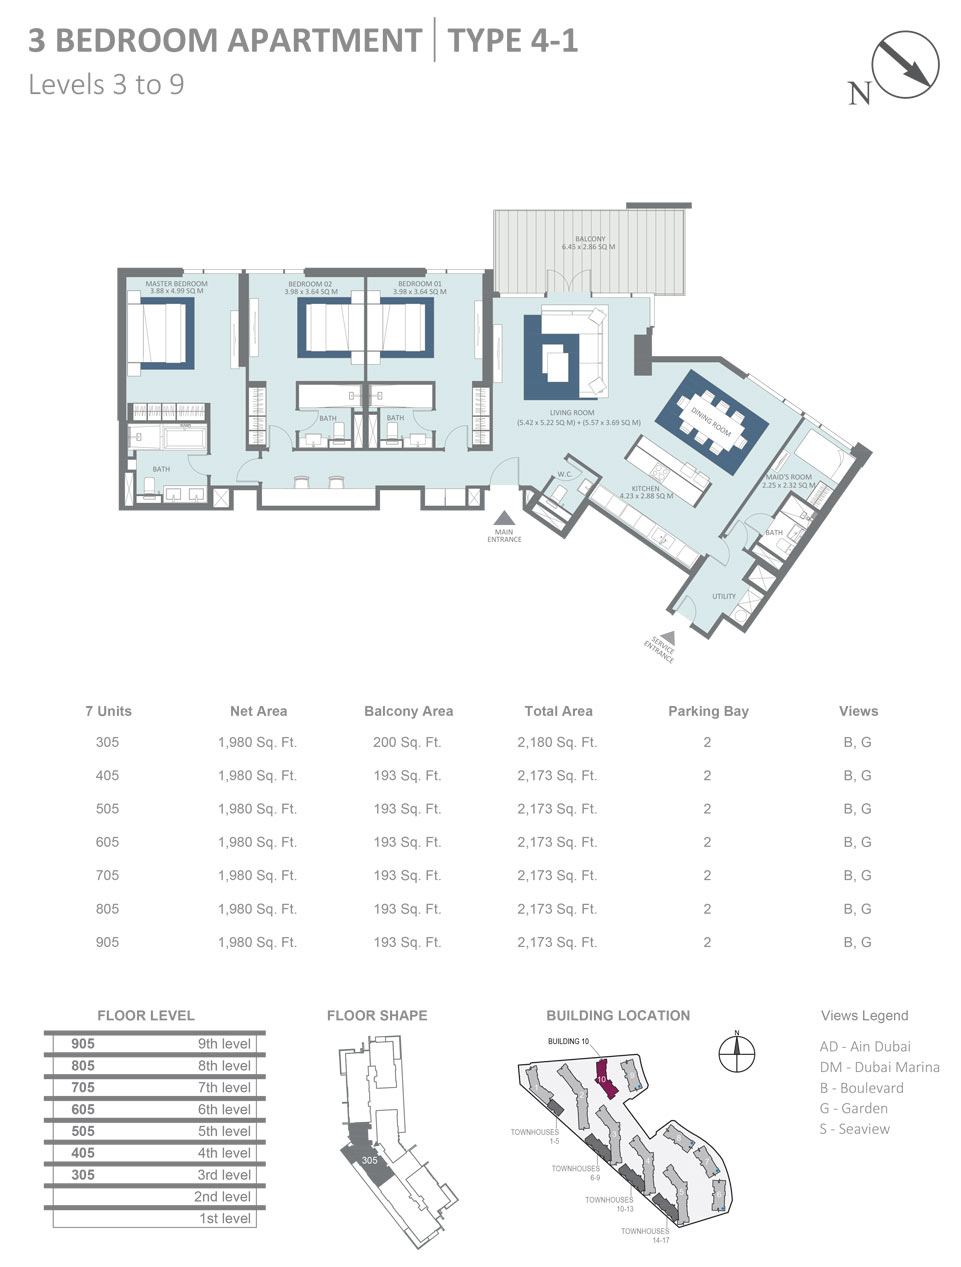 Building 10 - 3 Bedroom Apartment Type 4 - 1, Level 3, Size 2173  sq. ft.